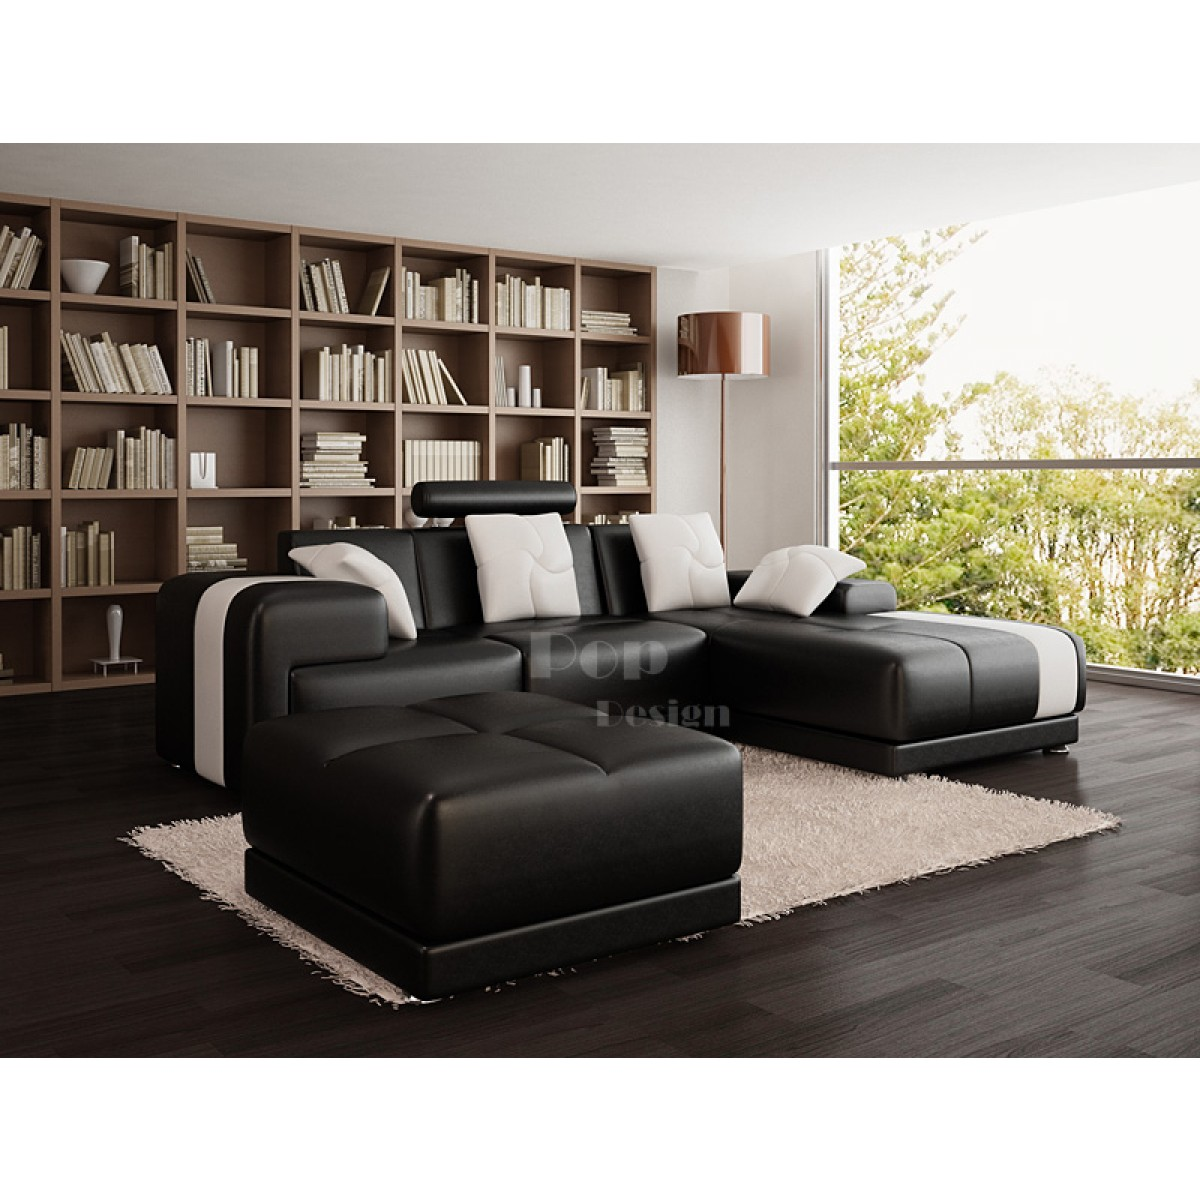 canap d 39 angle en cuir rimini pouf pop. Black Bedroom Furniture Sets. Home Design Ideas